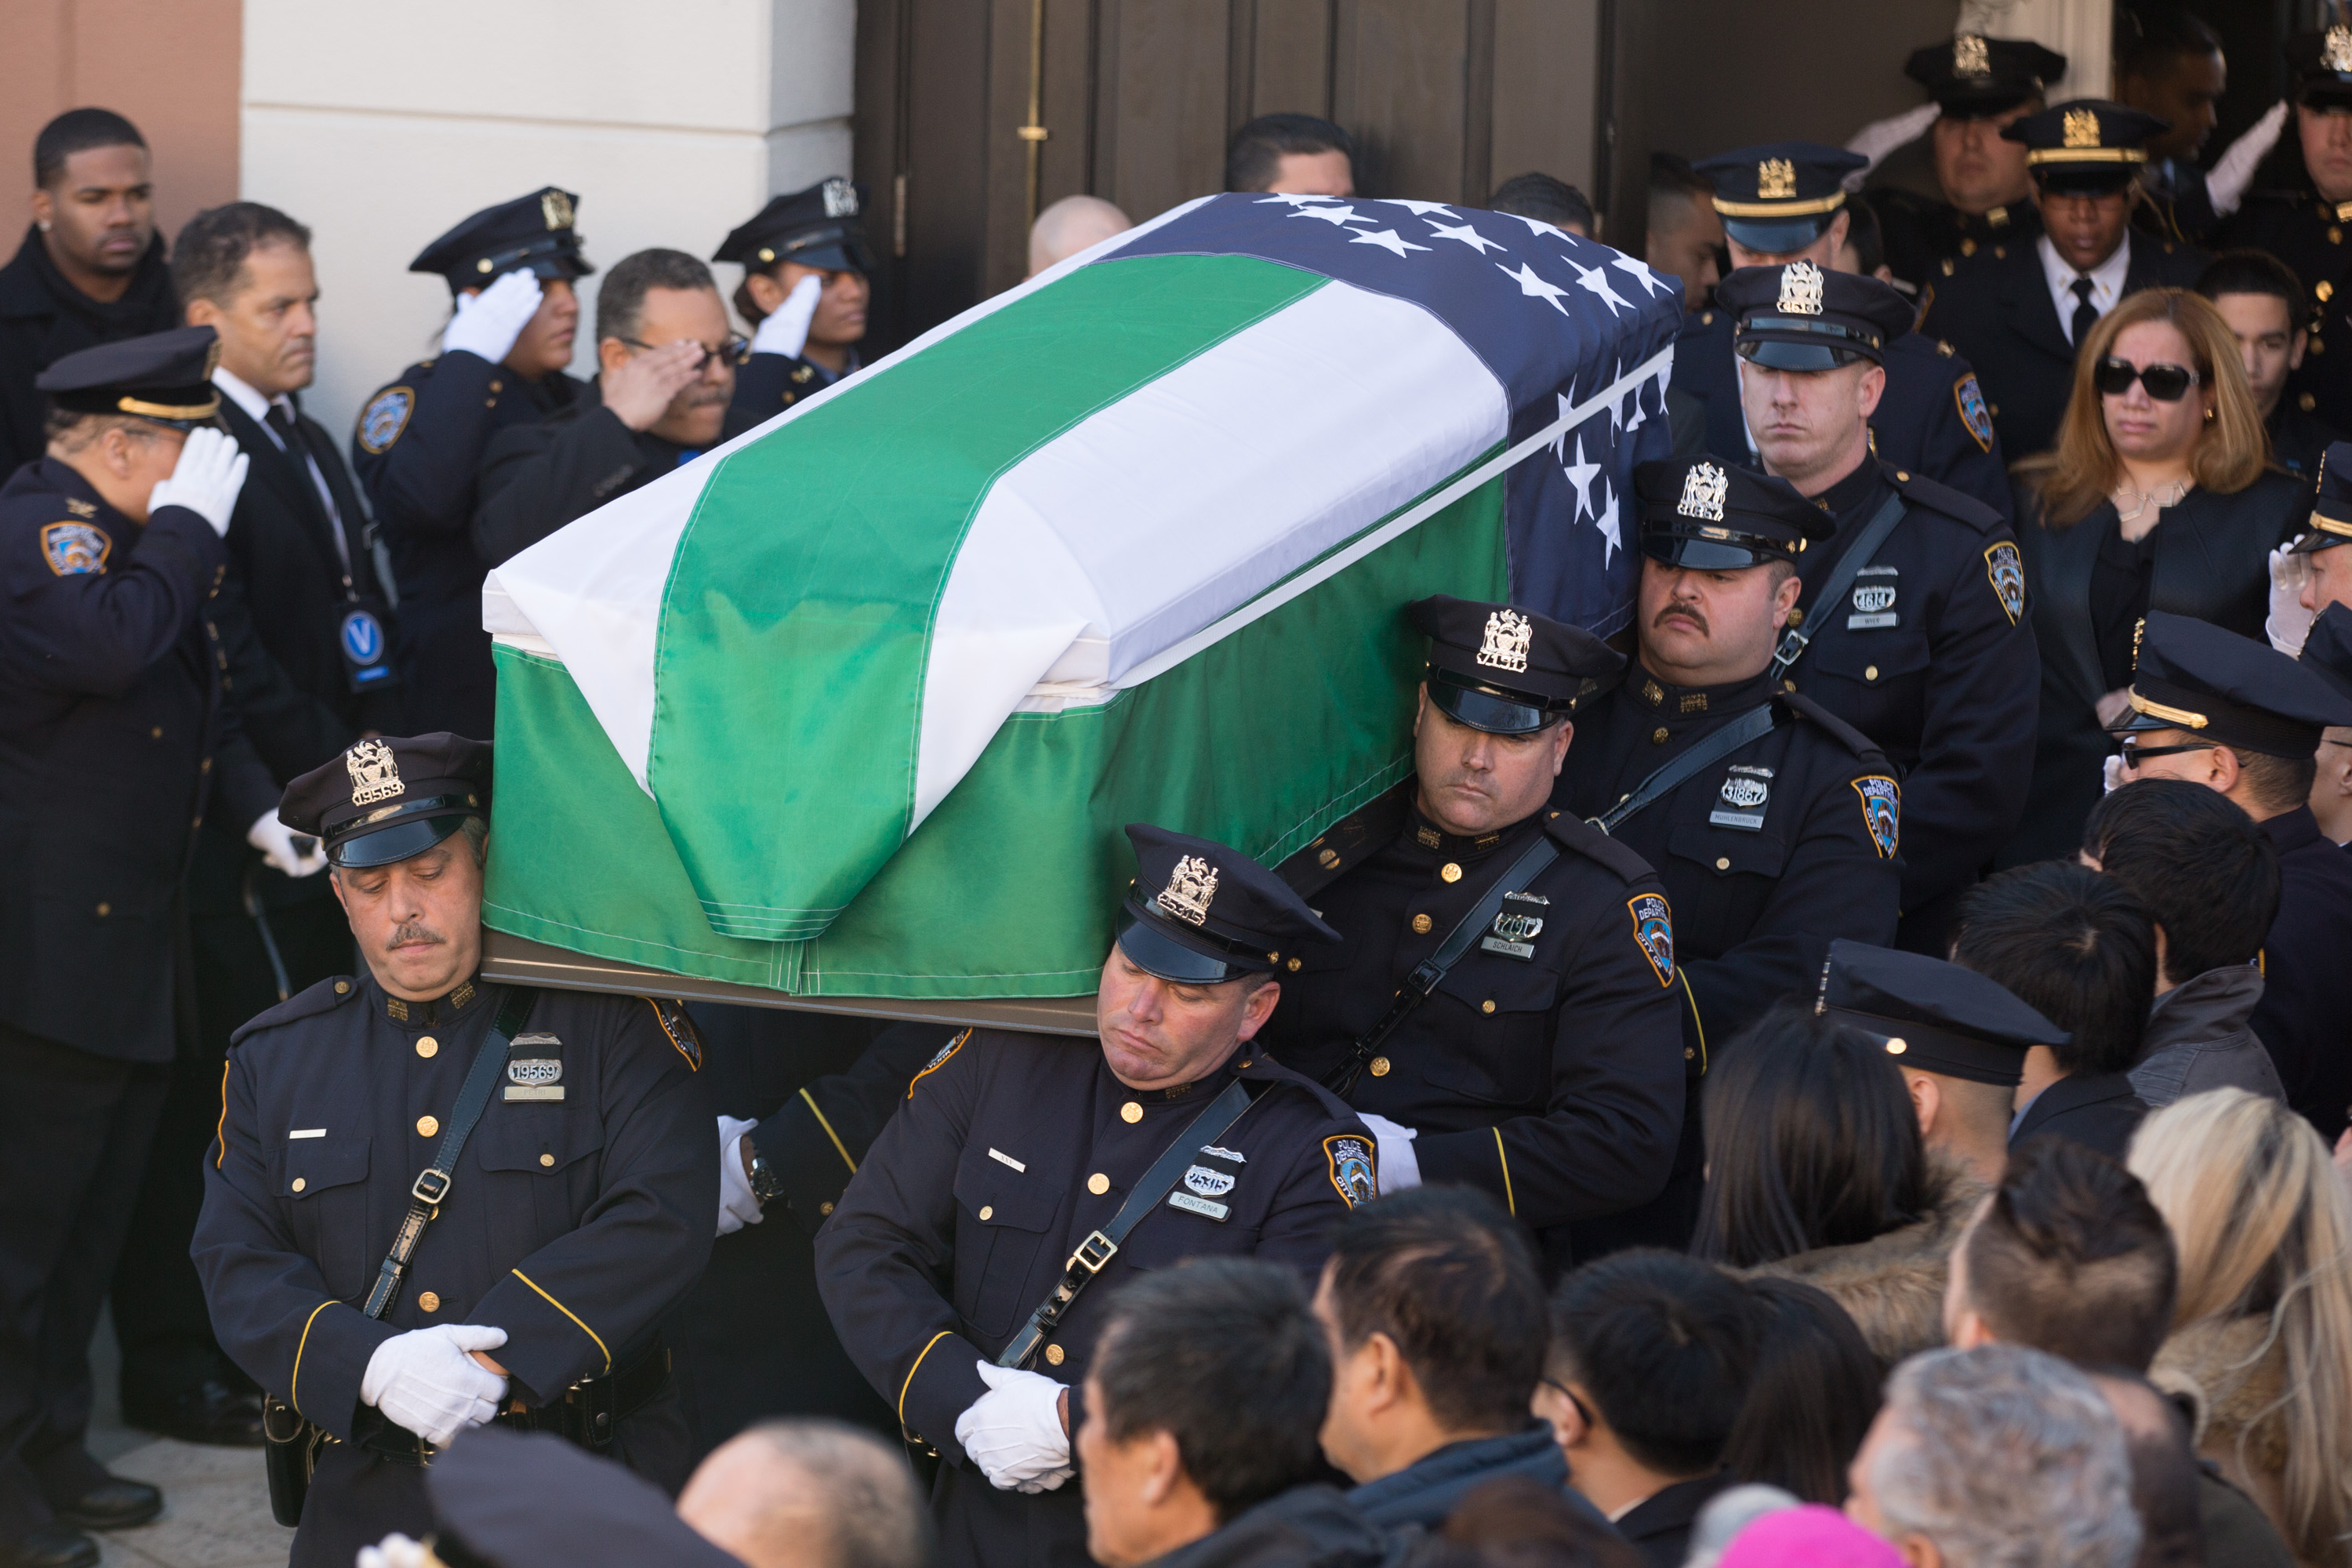 Pallbearers carry the casket for the funeral of slain New York Police Department officer Rafael Ramos at the Christ Tabernacle Church in Queens. (Photo by Kevin Hagen/Getty Images)